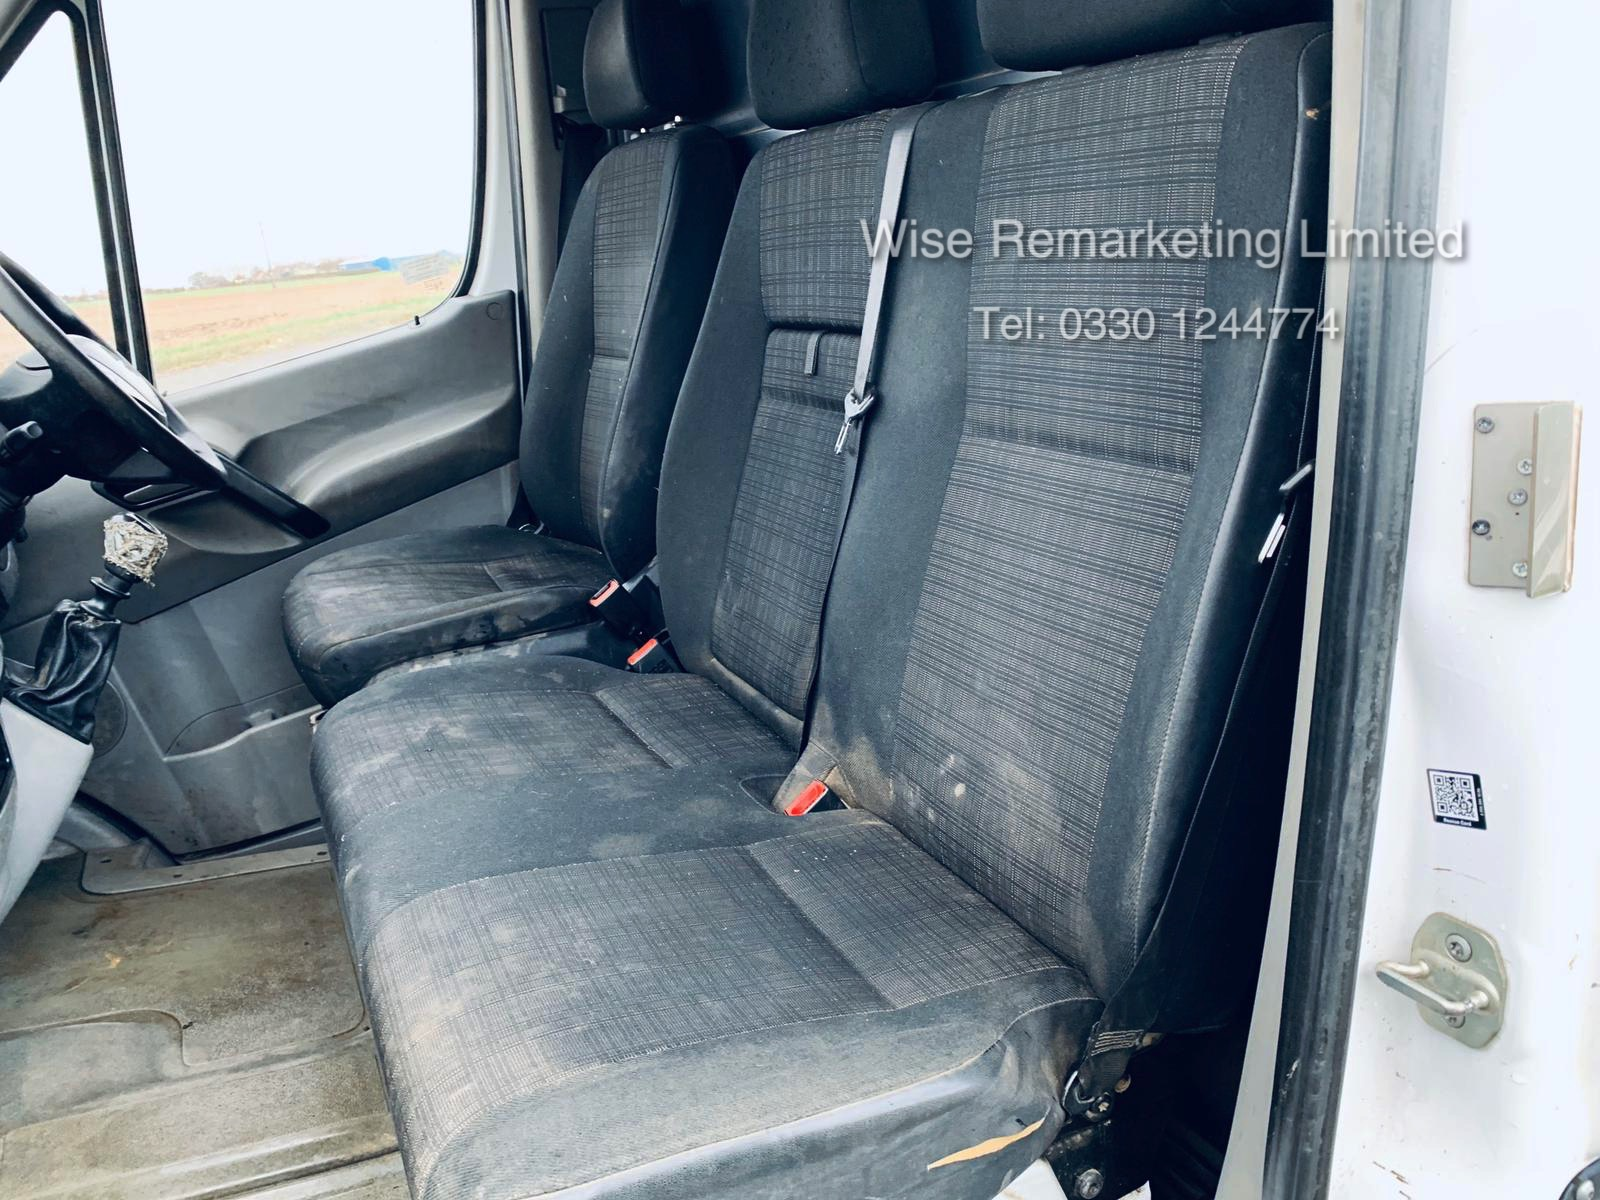 Mercedes Sprinter 313 2.1 CDI - 2014 14 Reg - 6 Speed - Ply Lined - Company Owned - Image 11 of 18